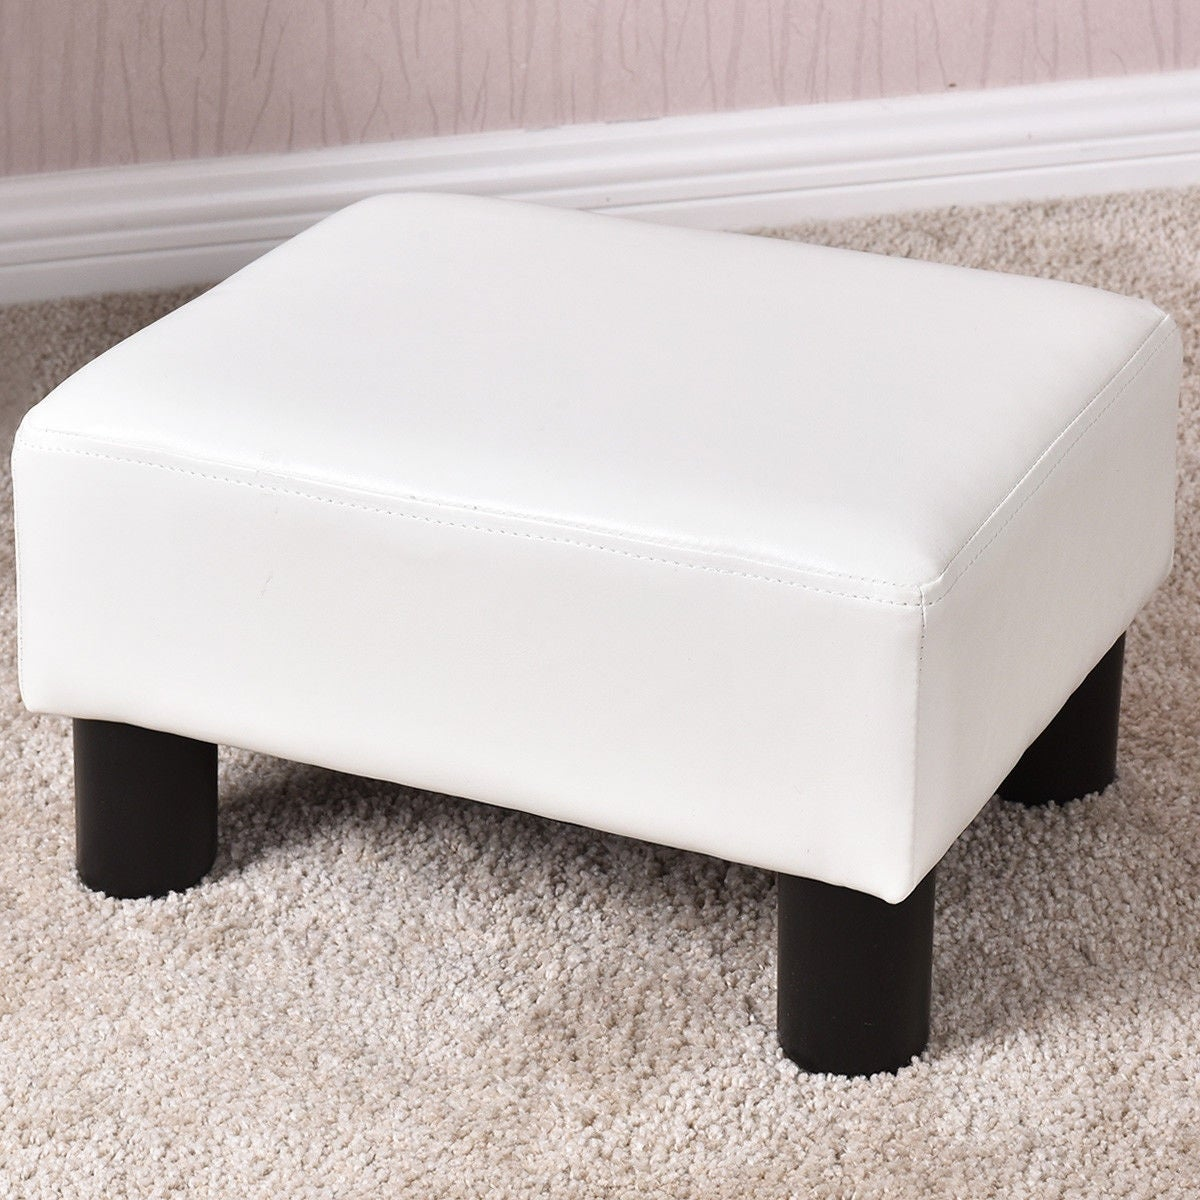 Costway Small Ottoman Footrest PU Leather Footstool Rectangular Seat Stool  White - Free Shipping On Orders Over $45 - Overstock.com - 24790152